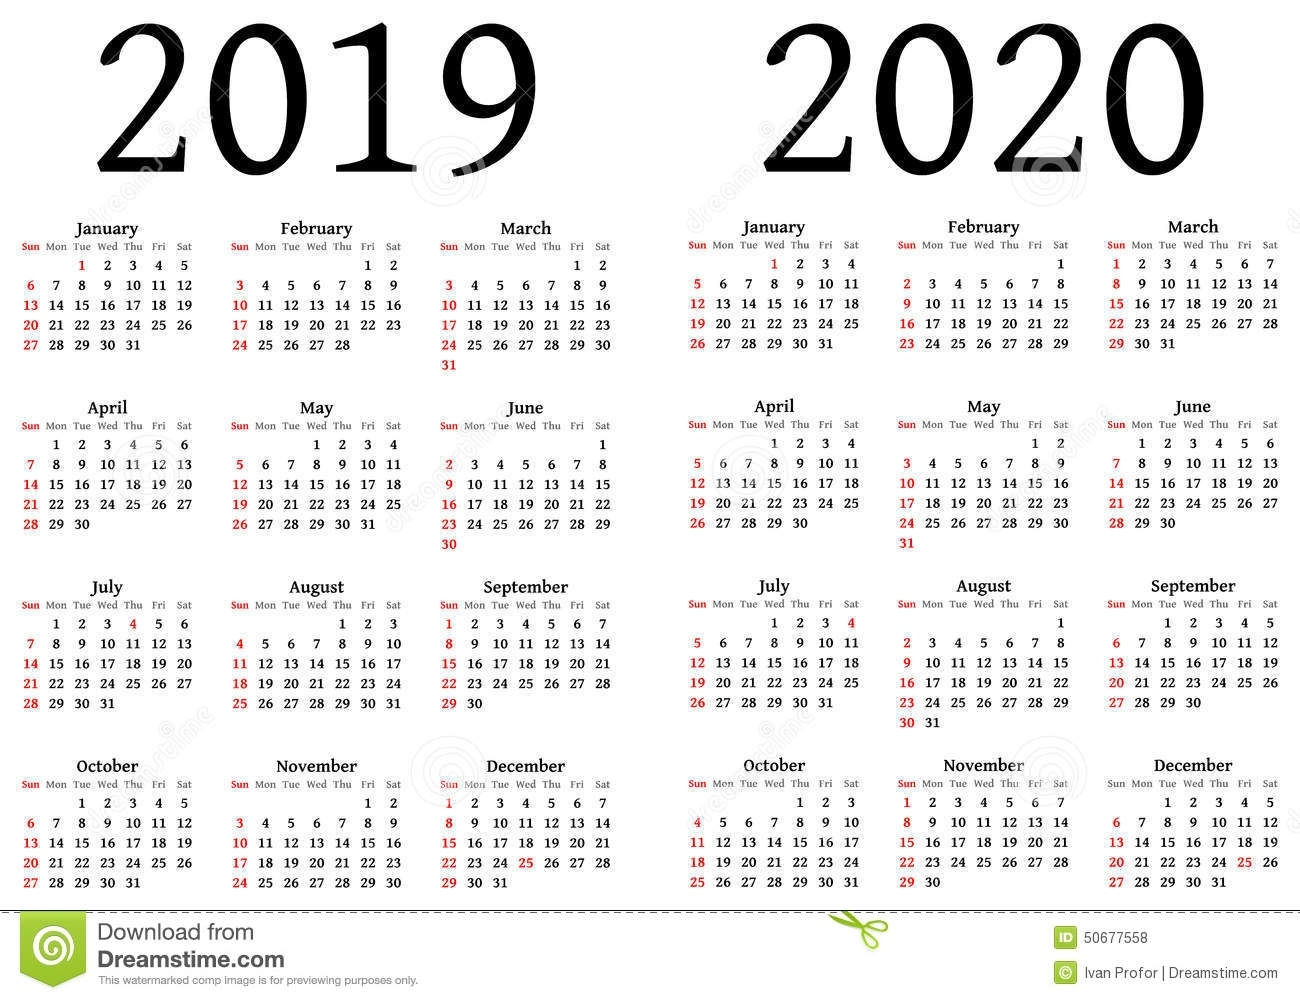 Printable Calendar For 2019 And 2020 | Printable Calendar 2019 inside 2019-2020 Blank Calendar To Print